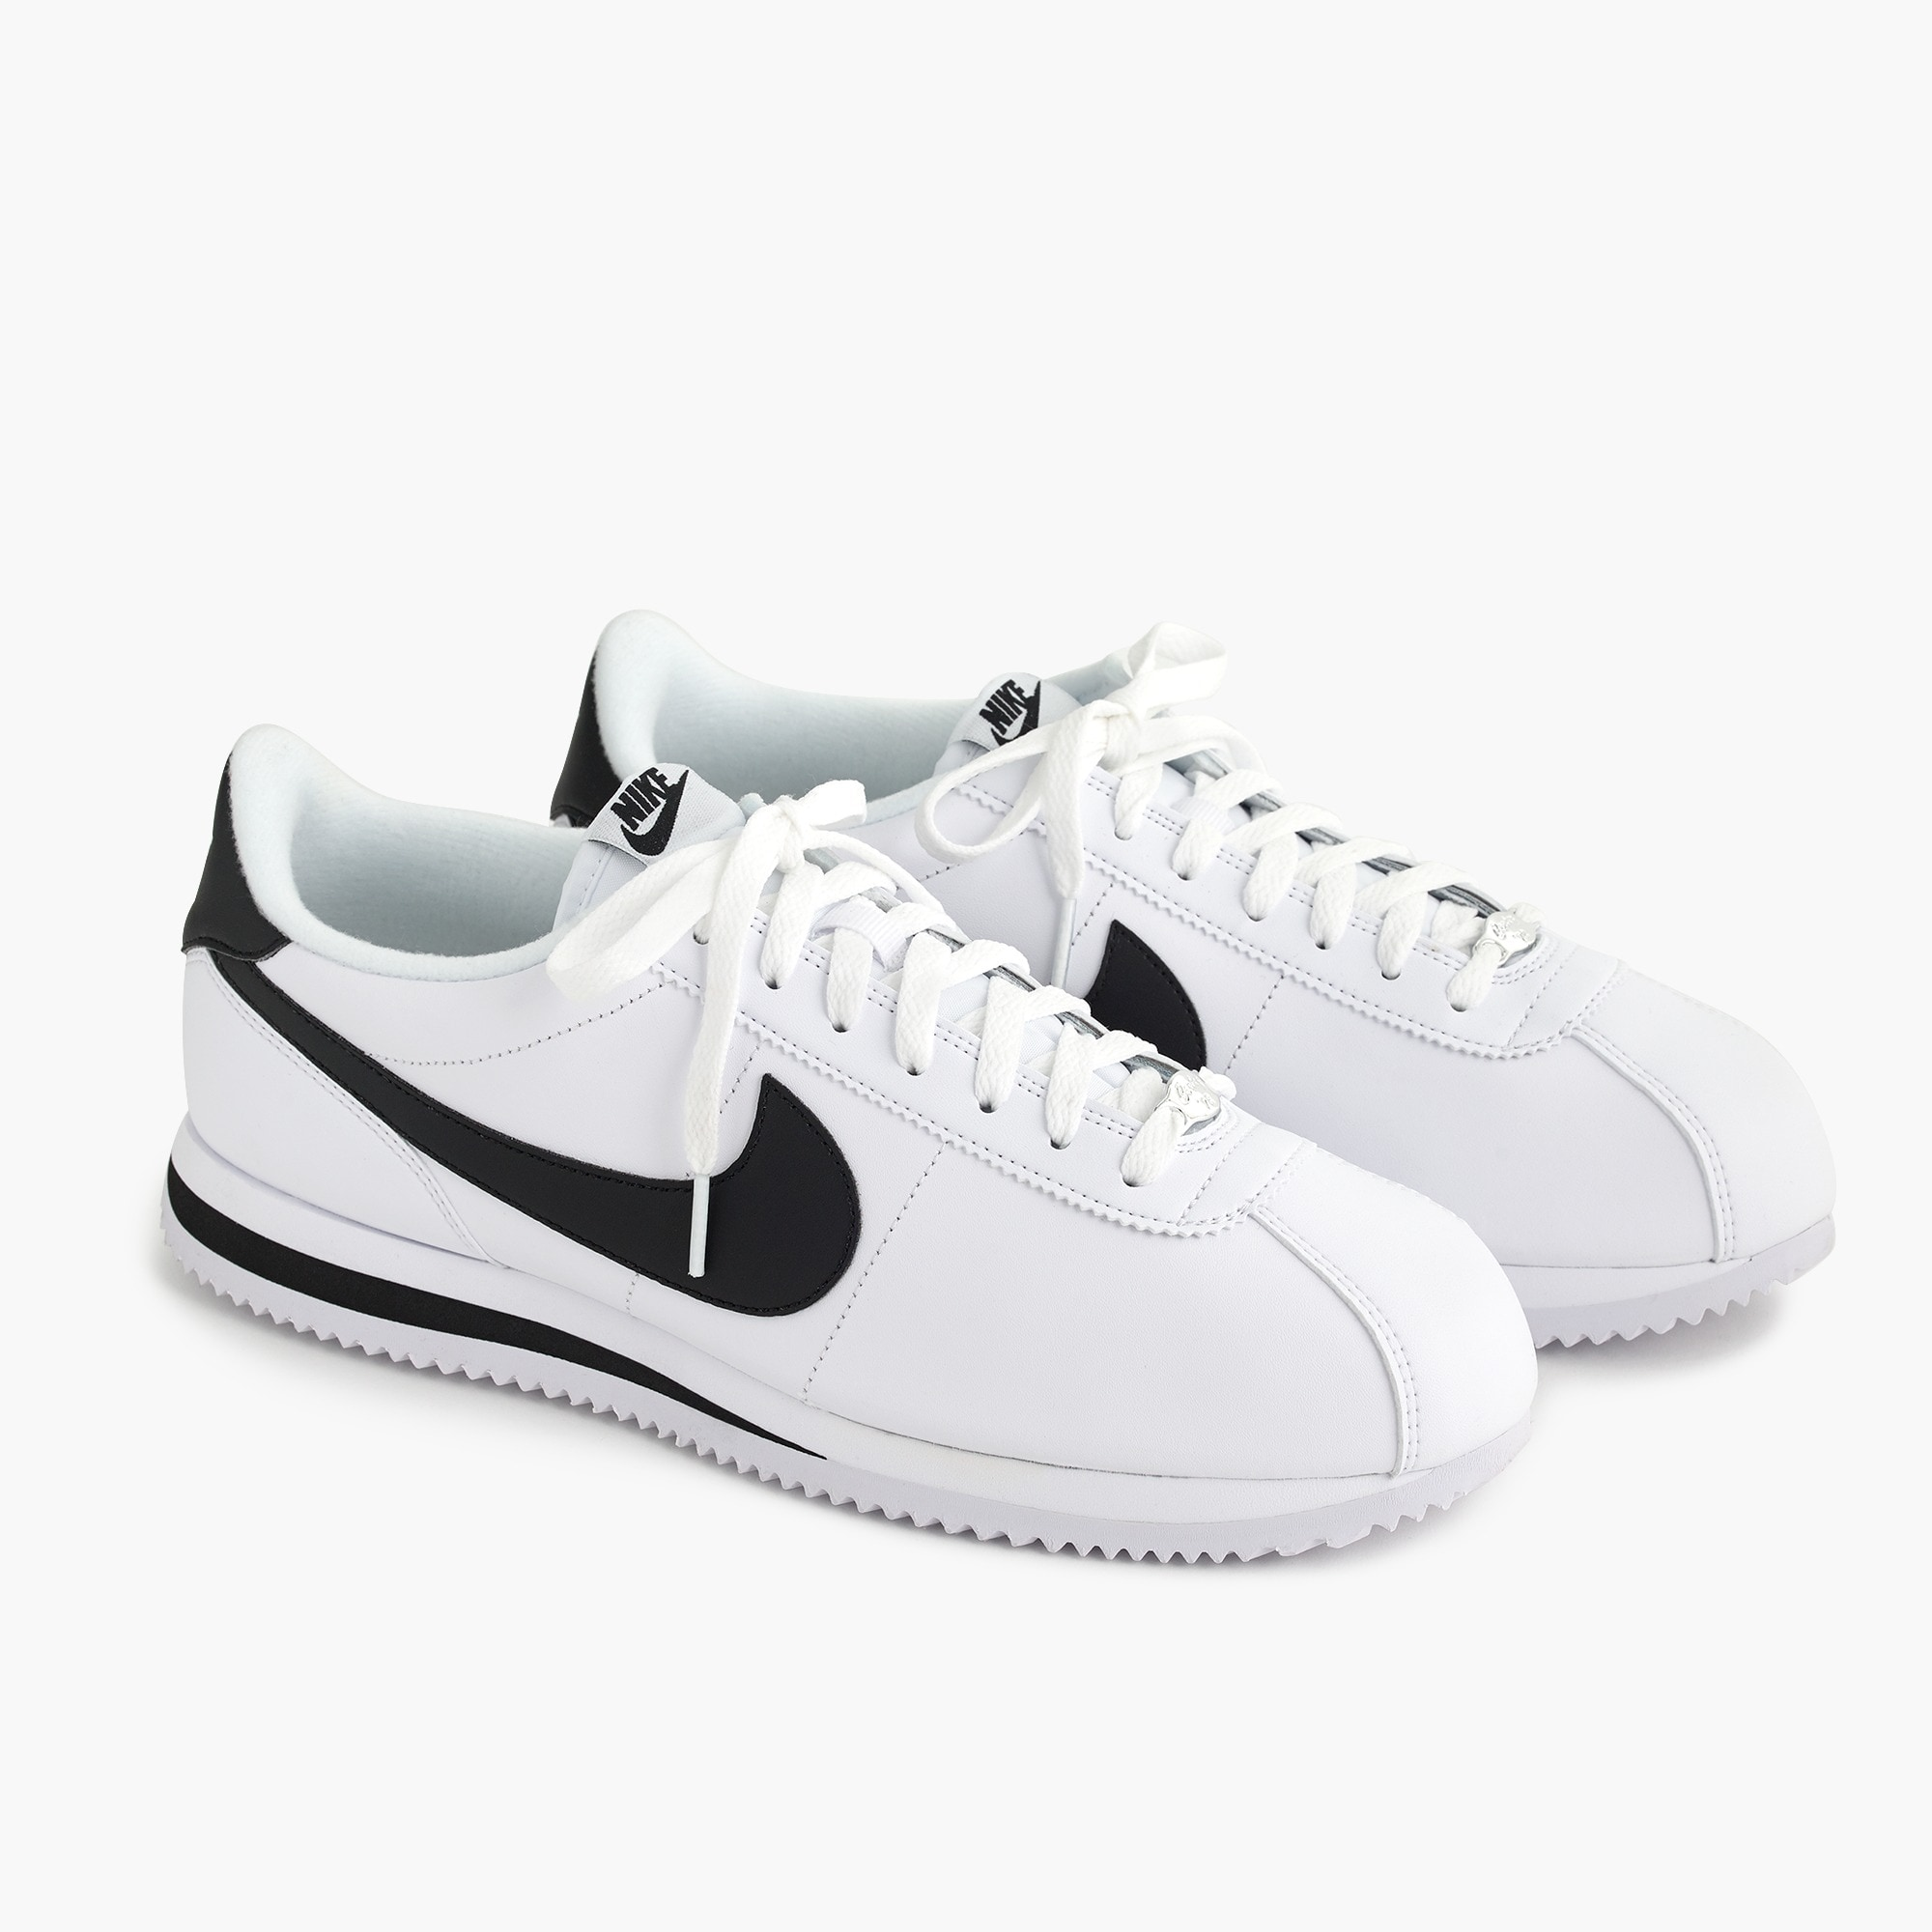 Nike® Cortez sneakers in leather men j.crew in good company c